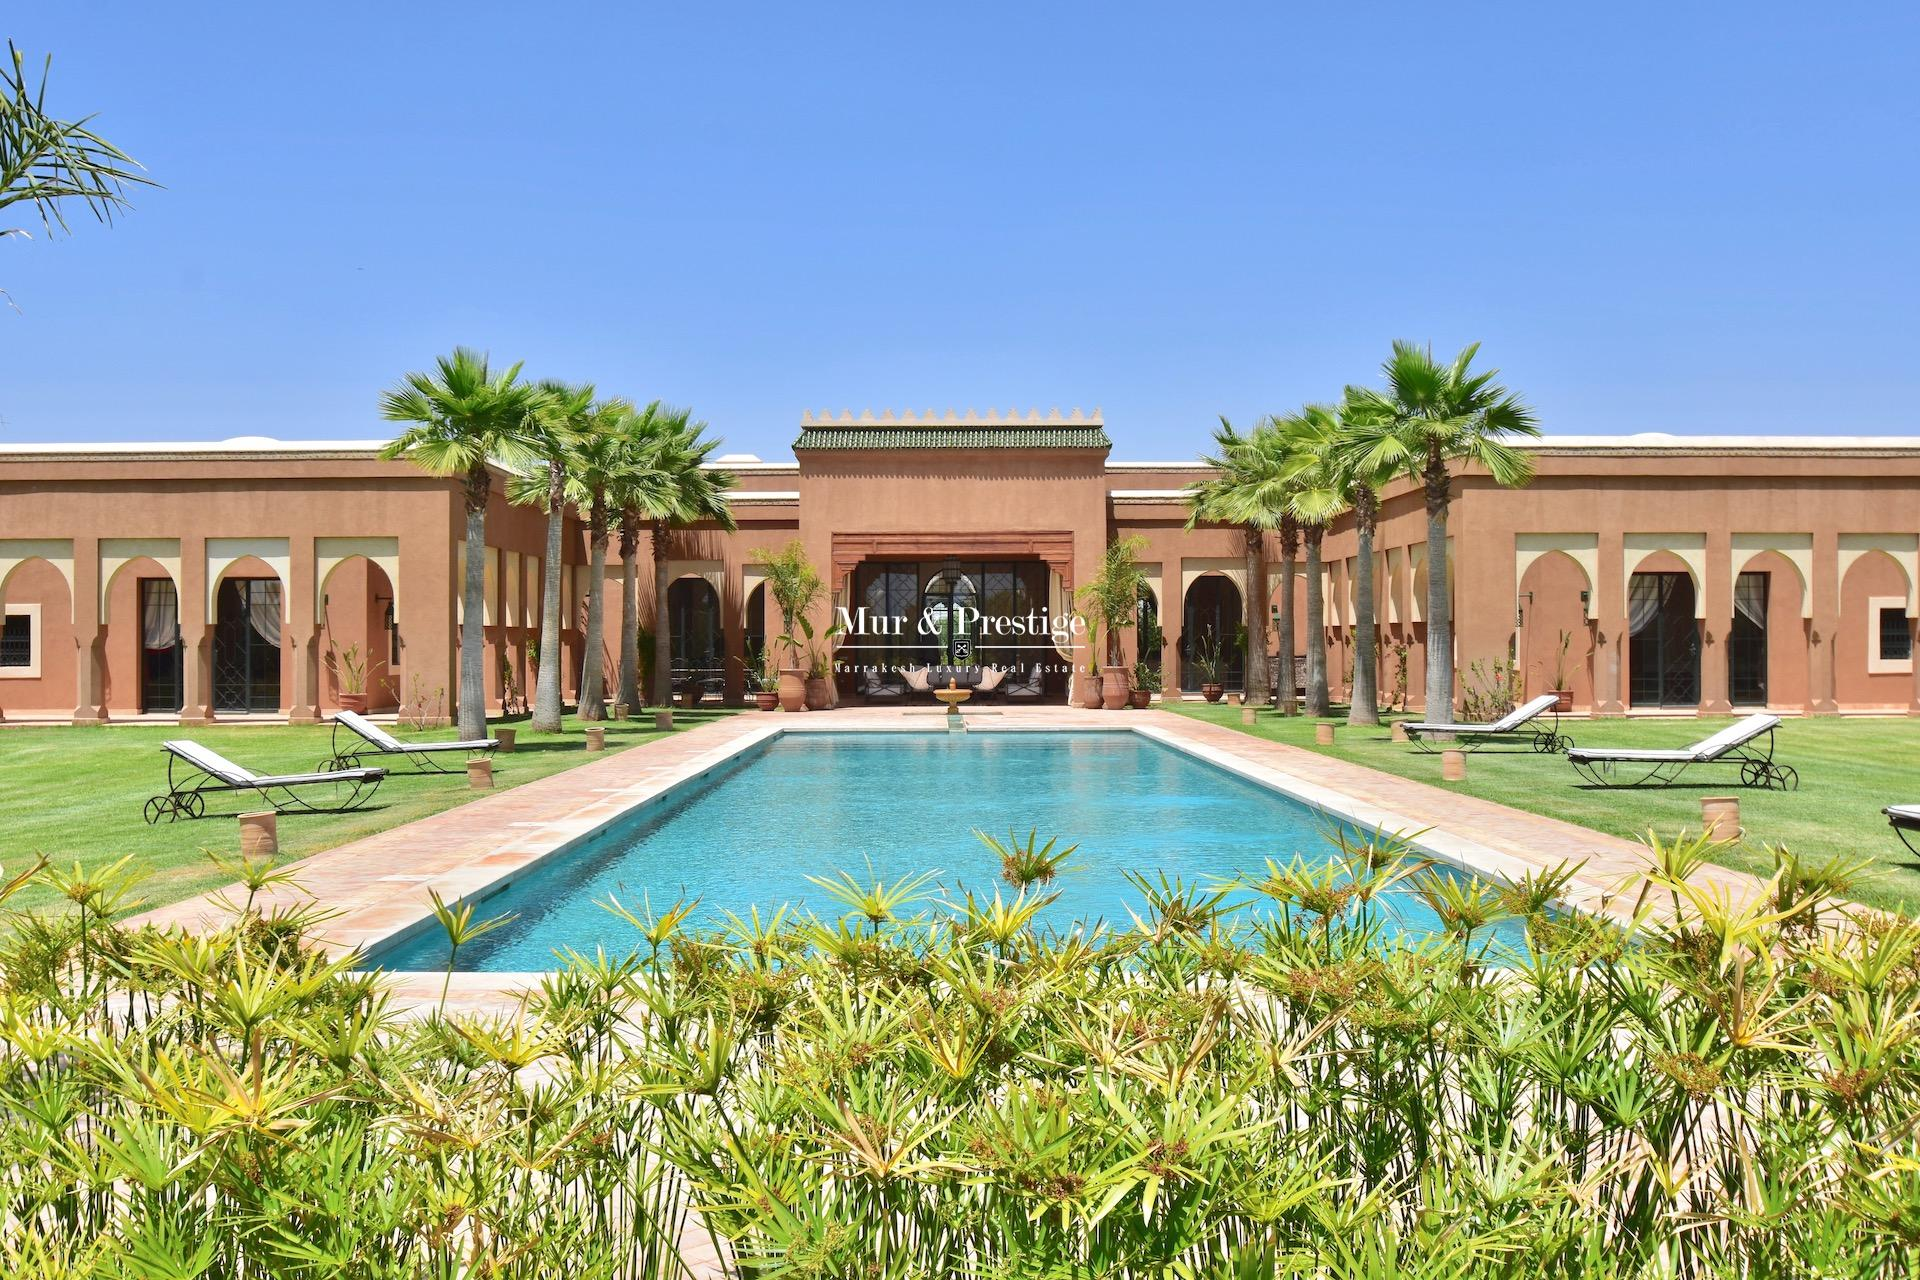 Maison de caract�re � vendre � Marrakech